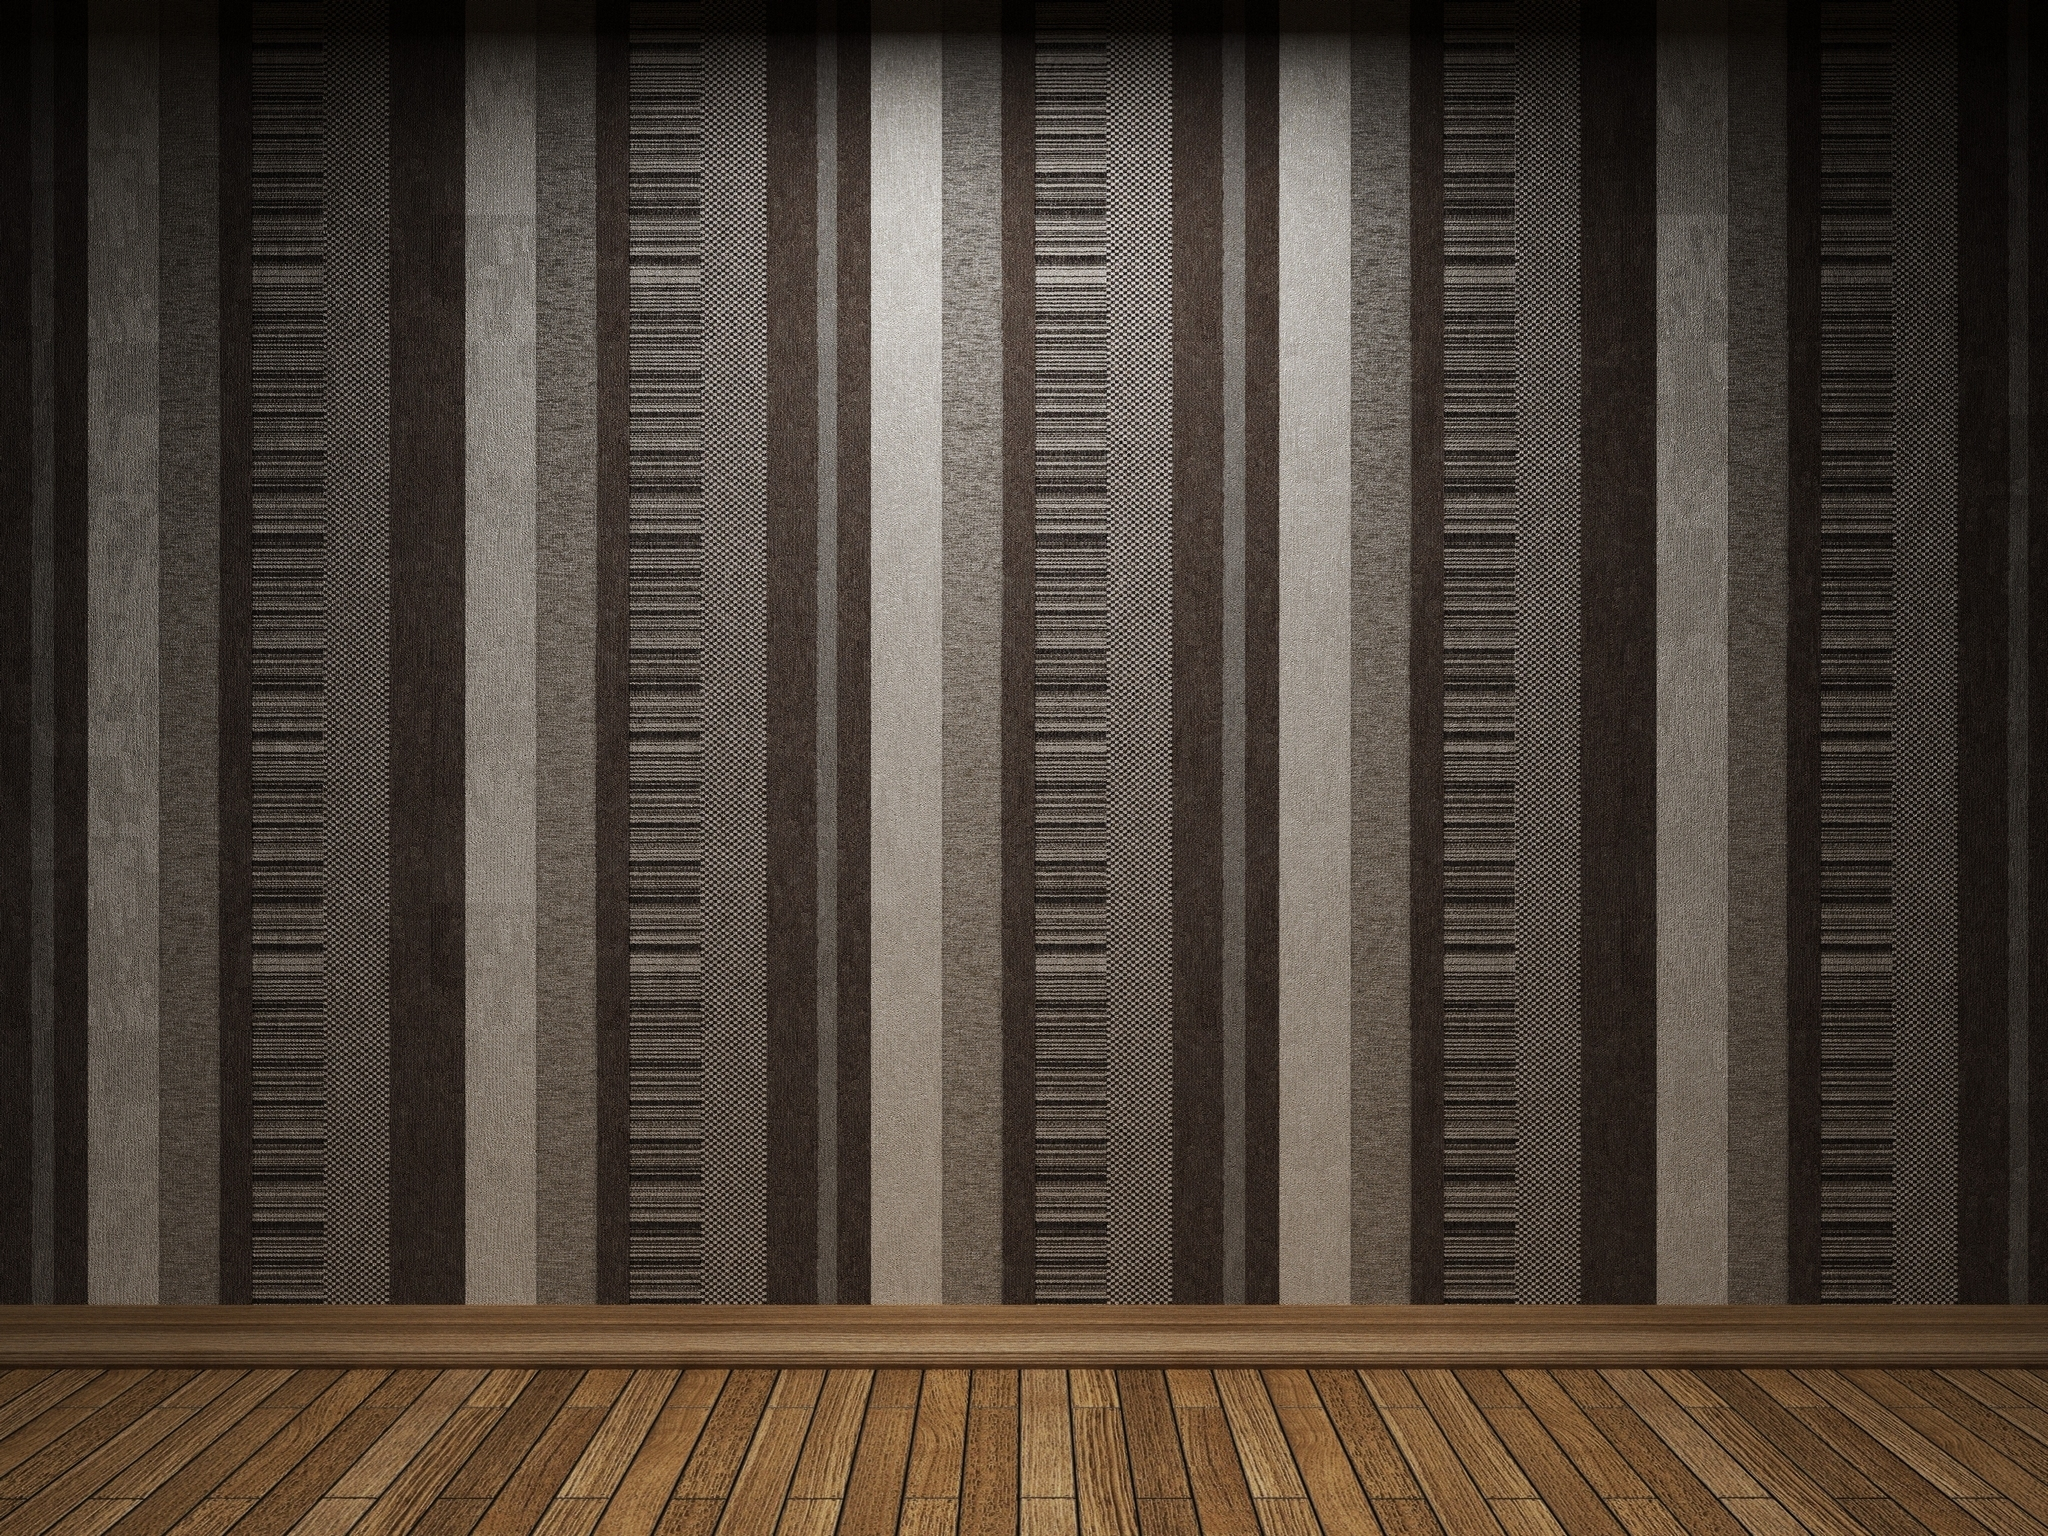 Elegant wall design   Designs Wallpaper 22687151 2048x1536